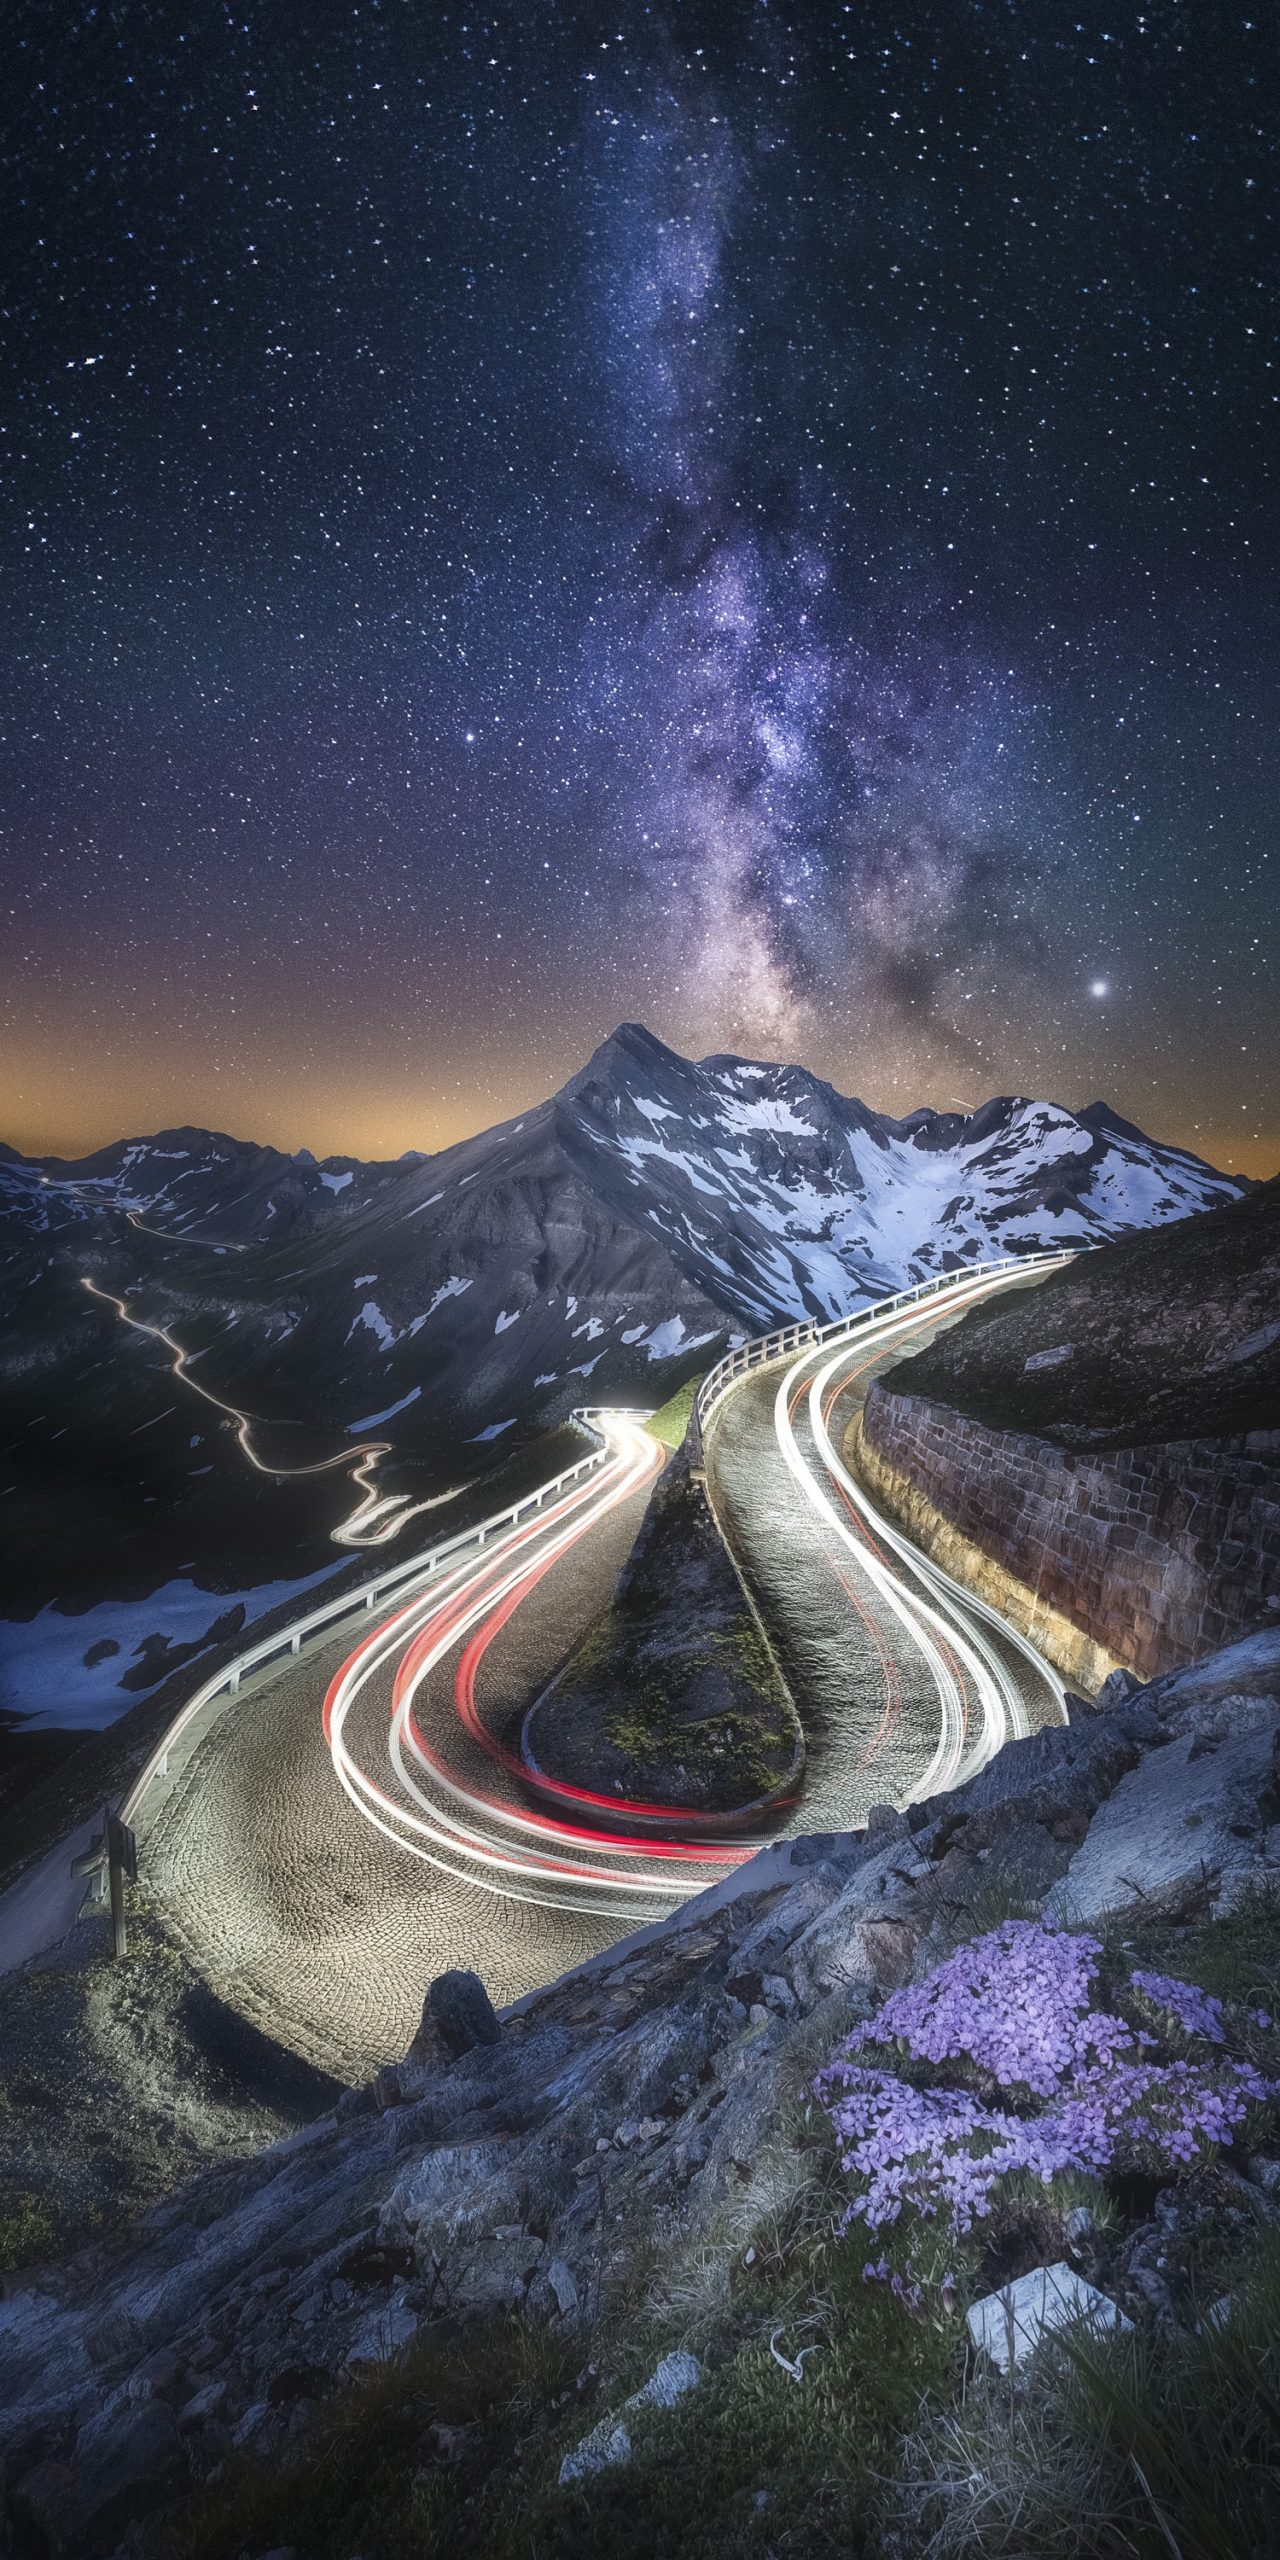 'Milky Way', Grossglockner High Alpine Road, Austria – Daniel Trippolt